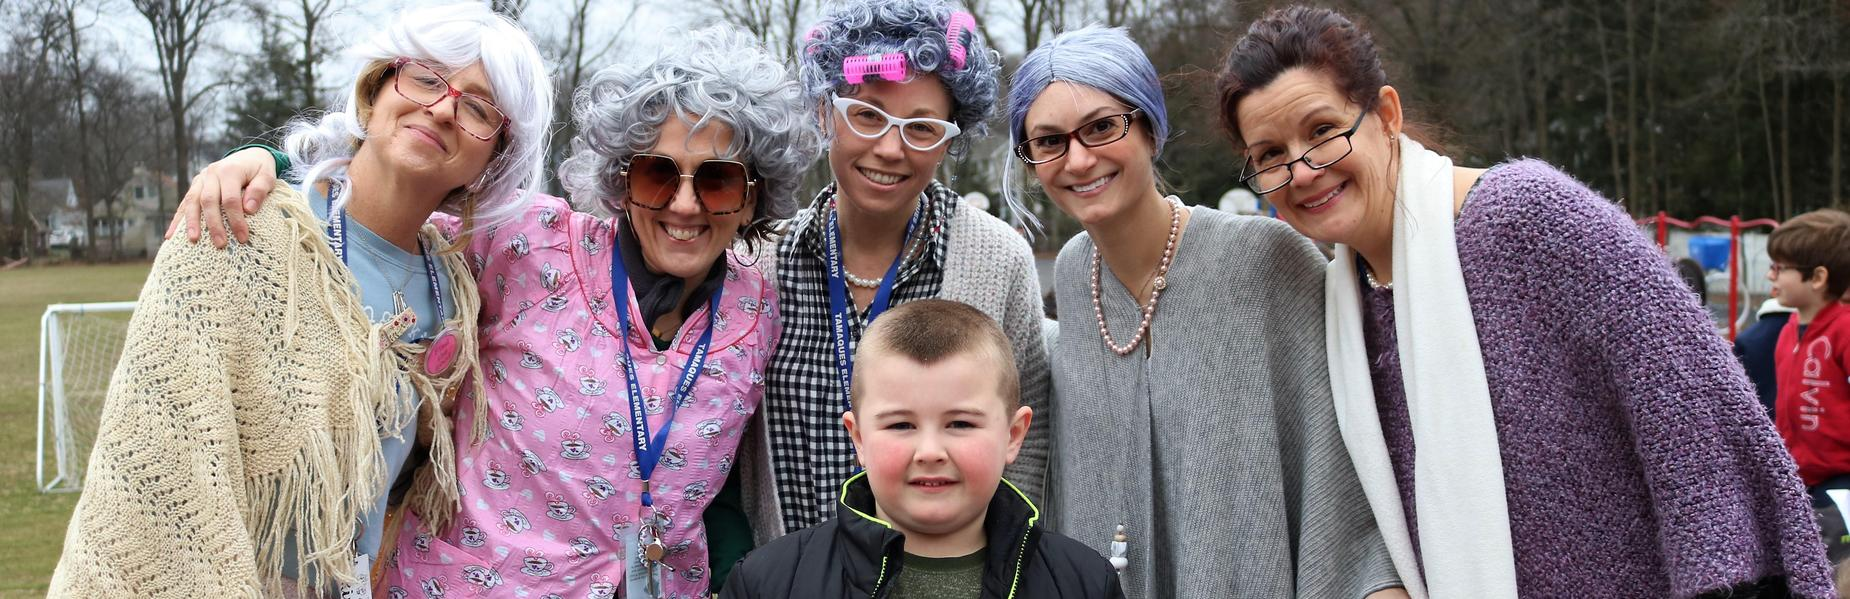 Photo of Tamaques 1st grade teachers dressed as elderly people on 100th Day of School.